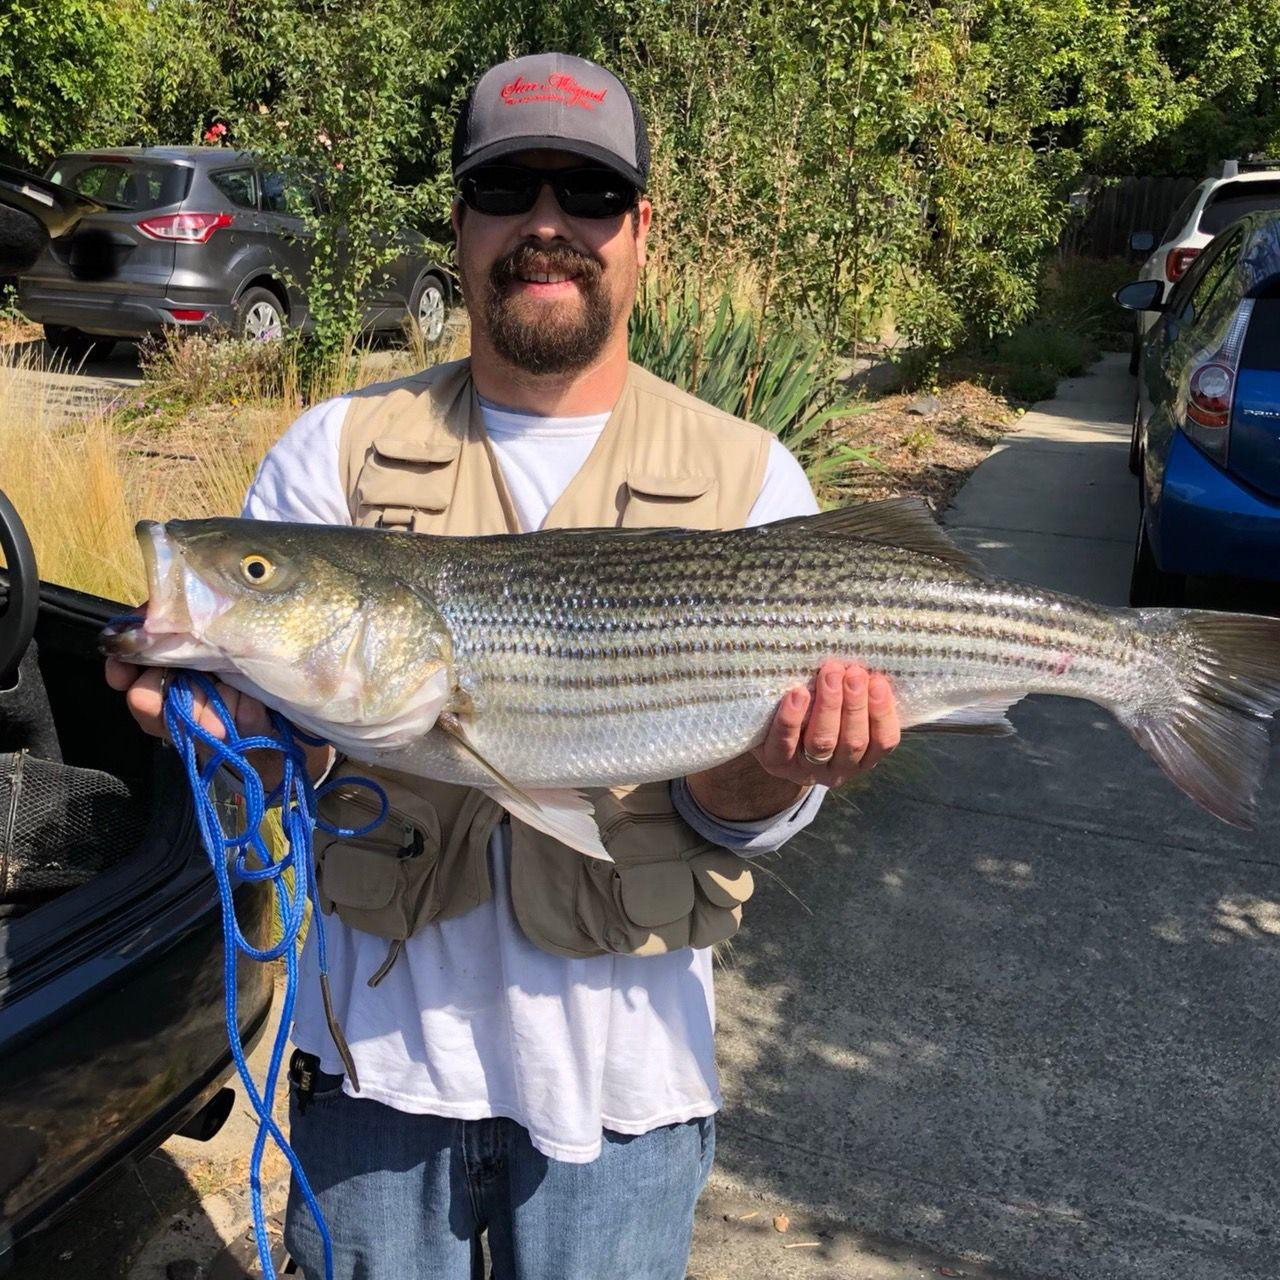 Bear Stripers napa valley fishing report: stable weather means stripers in